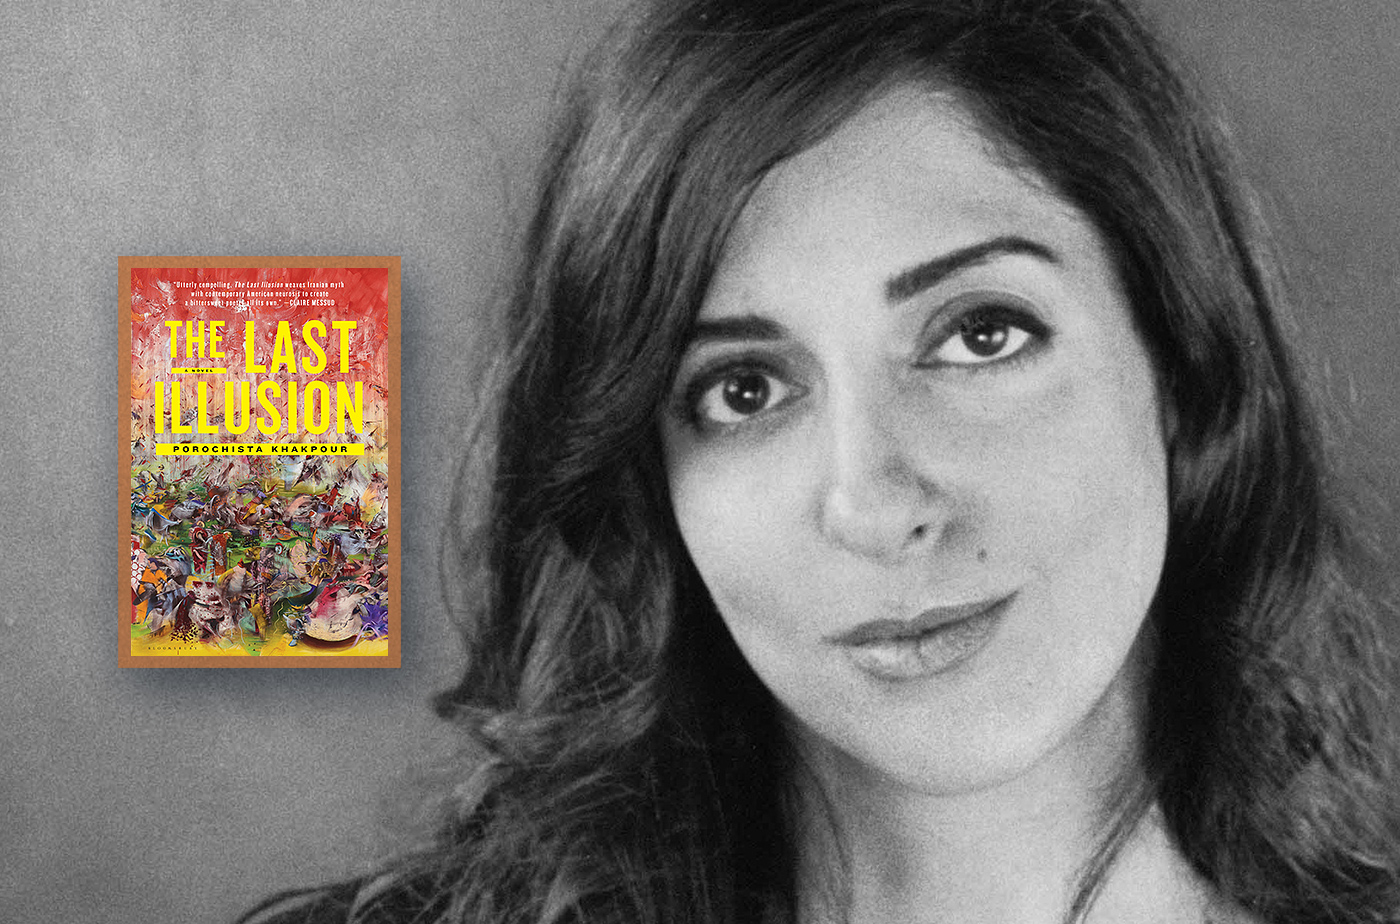 Catapult  classes: Porochista Khakpour, Nonfiction Master Class, Nonfiction, Master Class